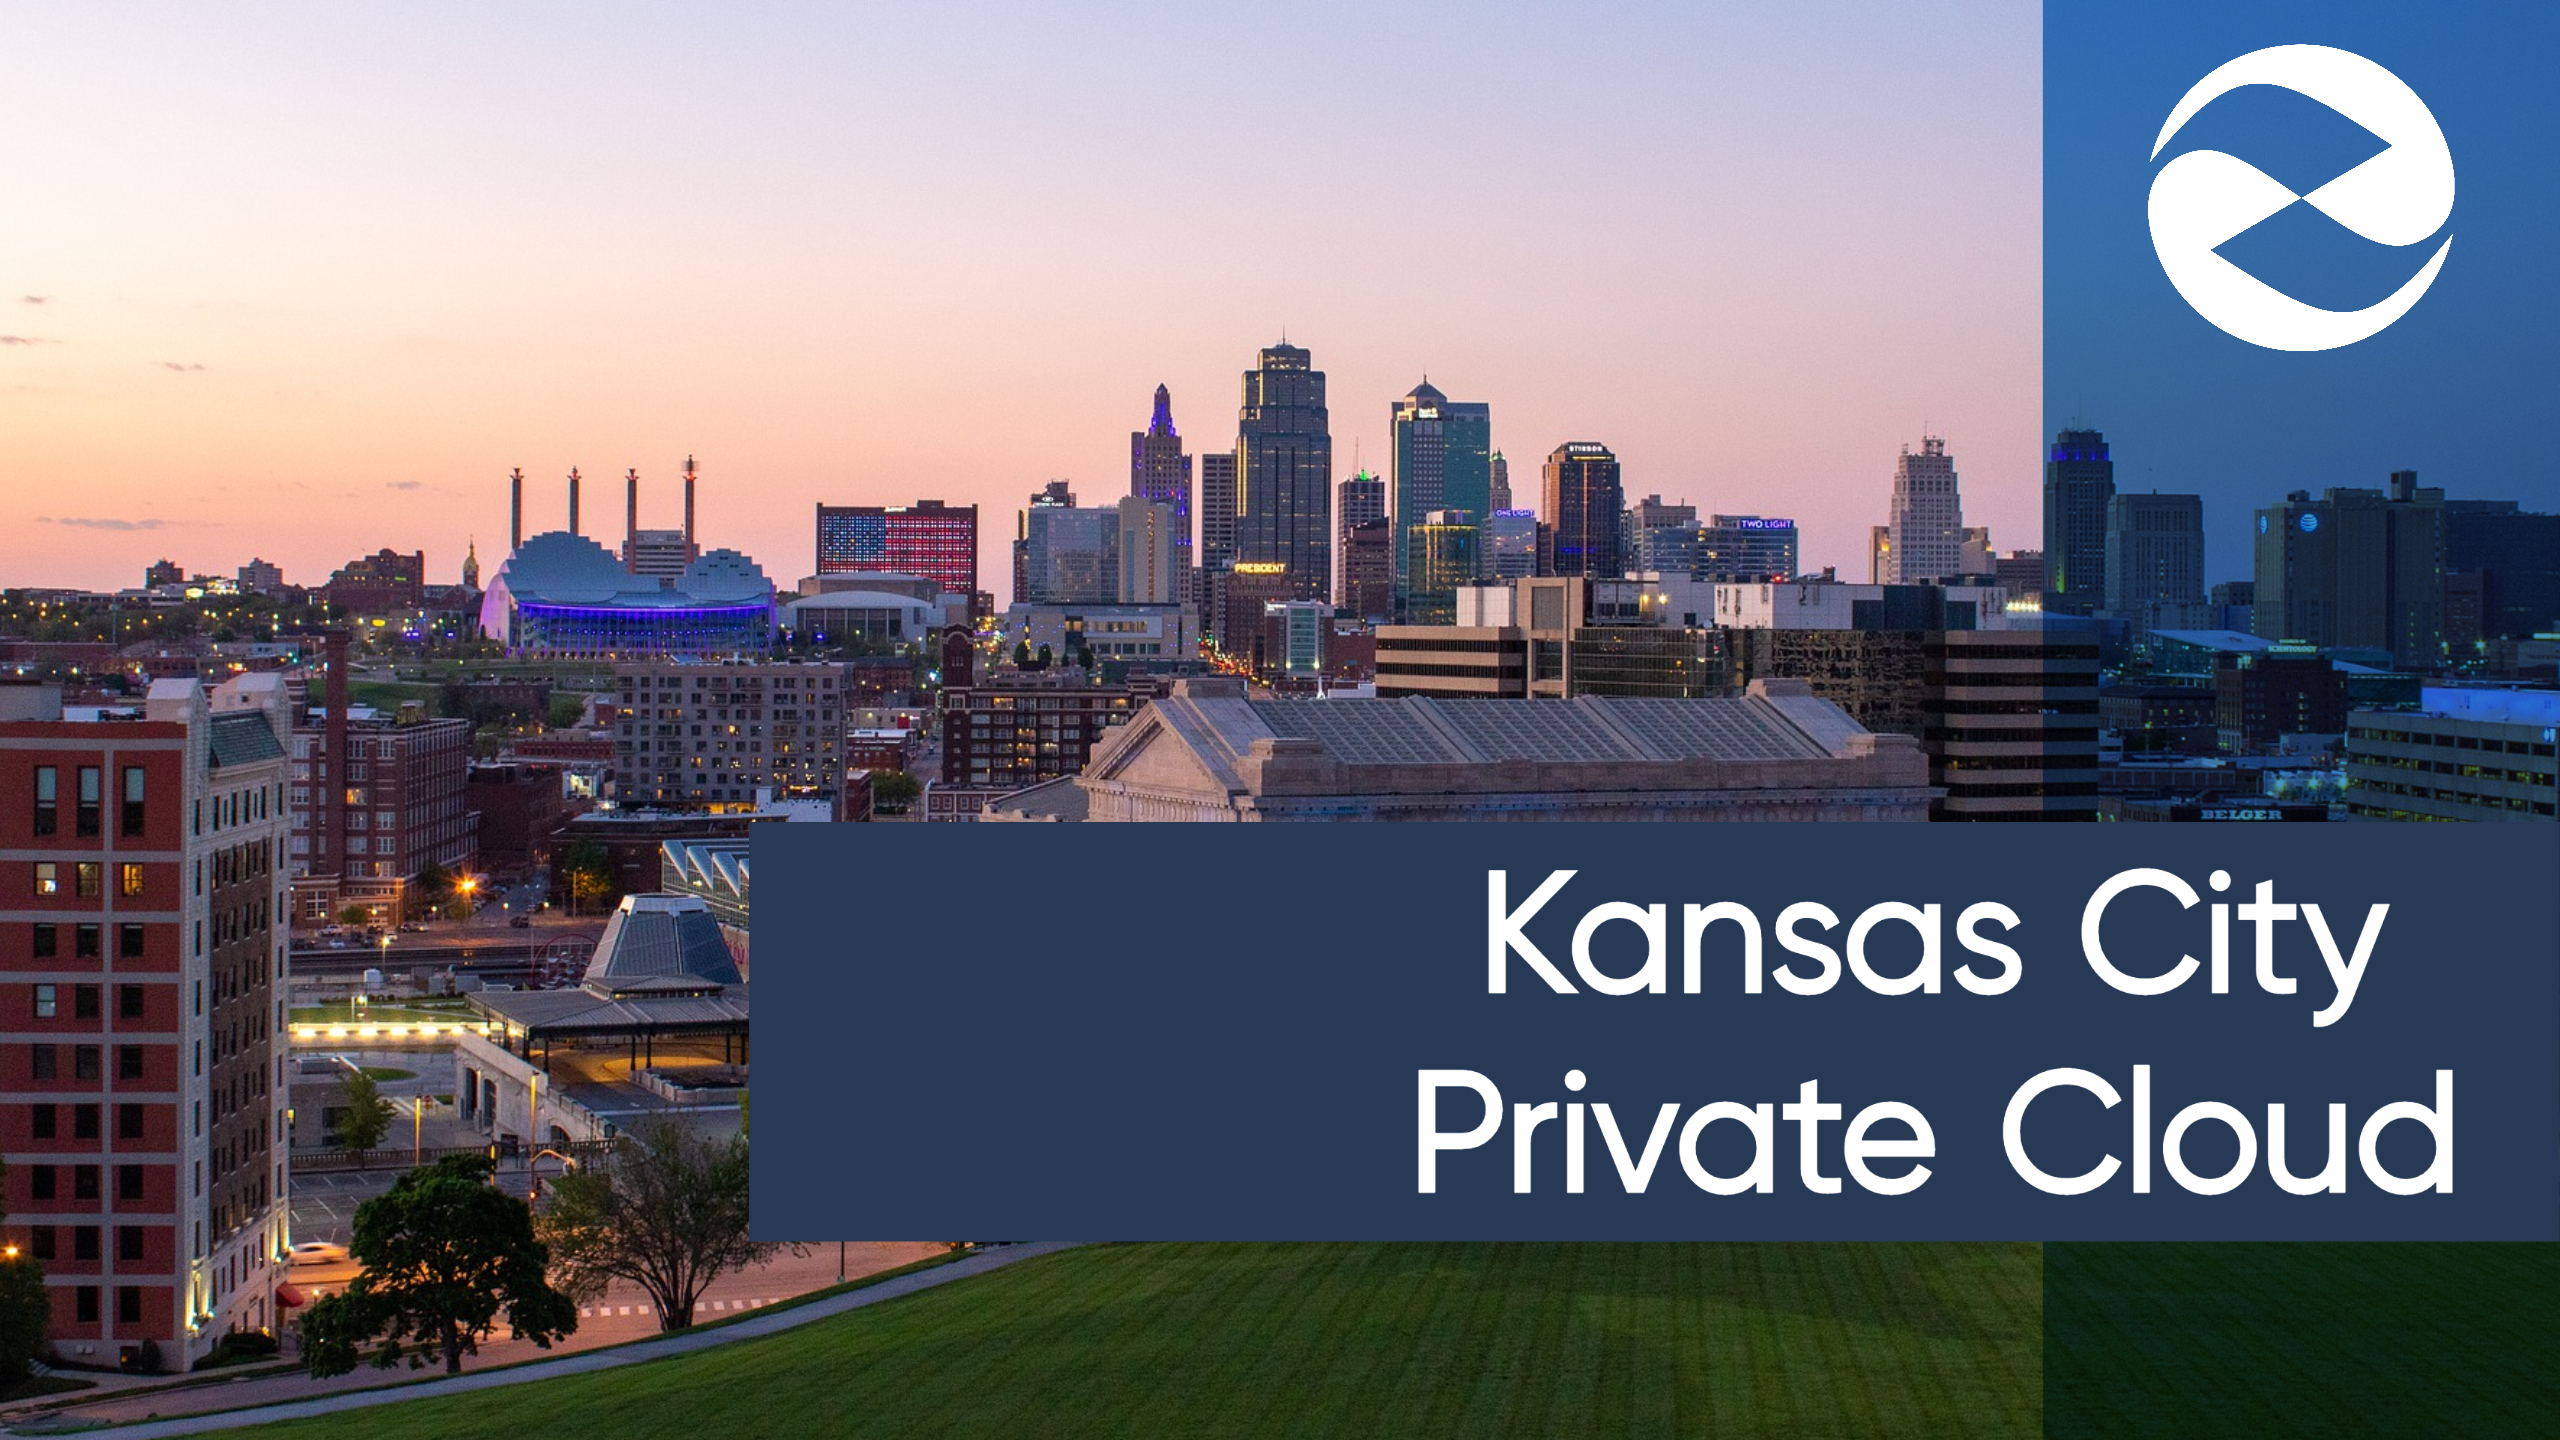 Why a Kansas City Private Cloud?